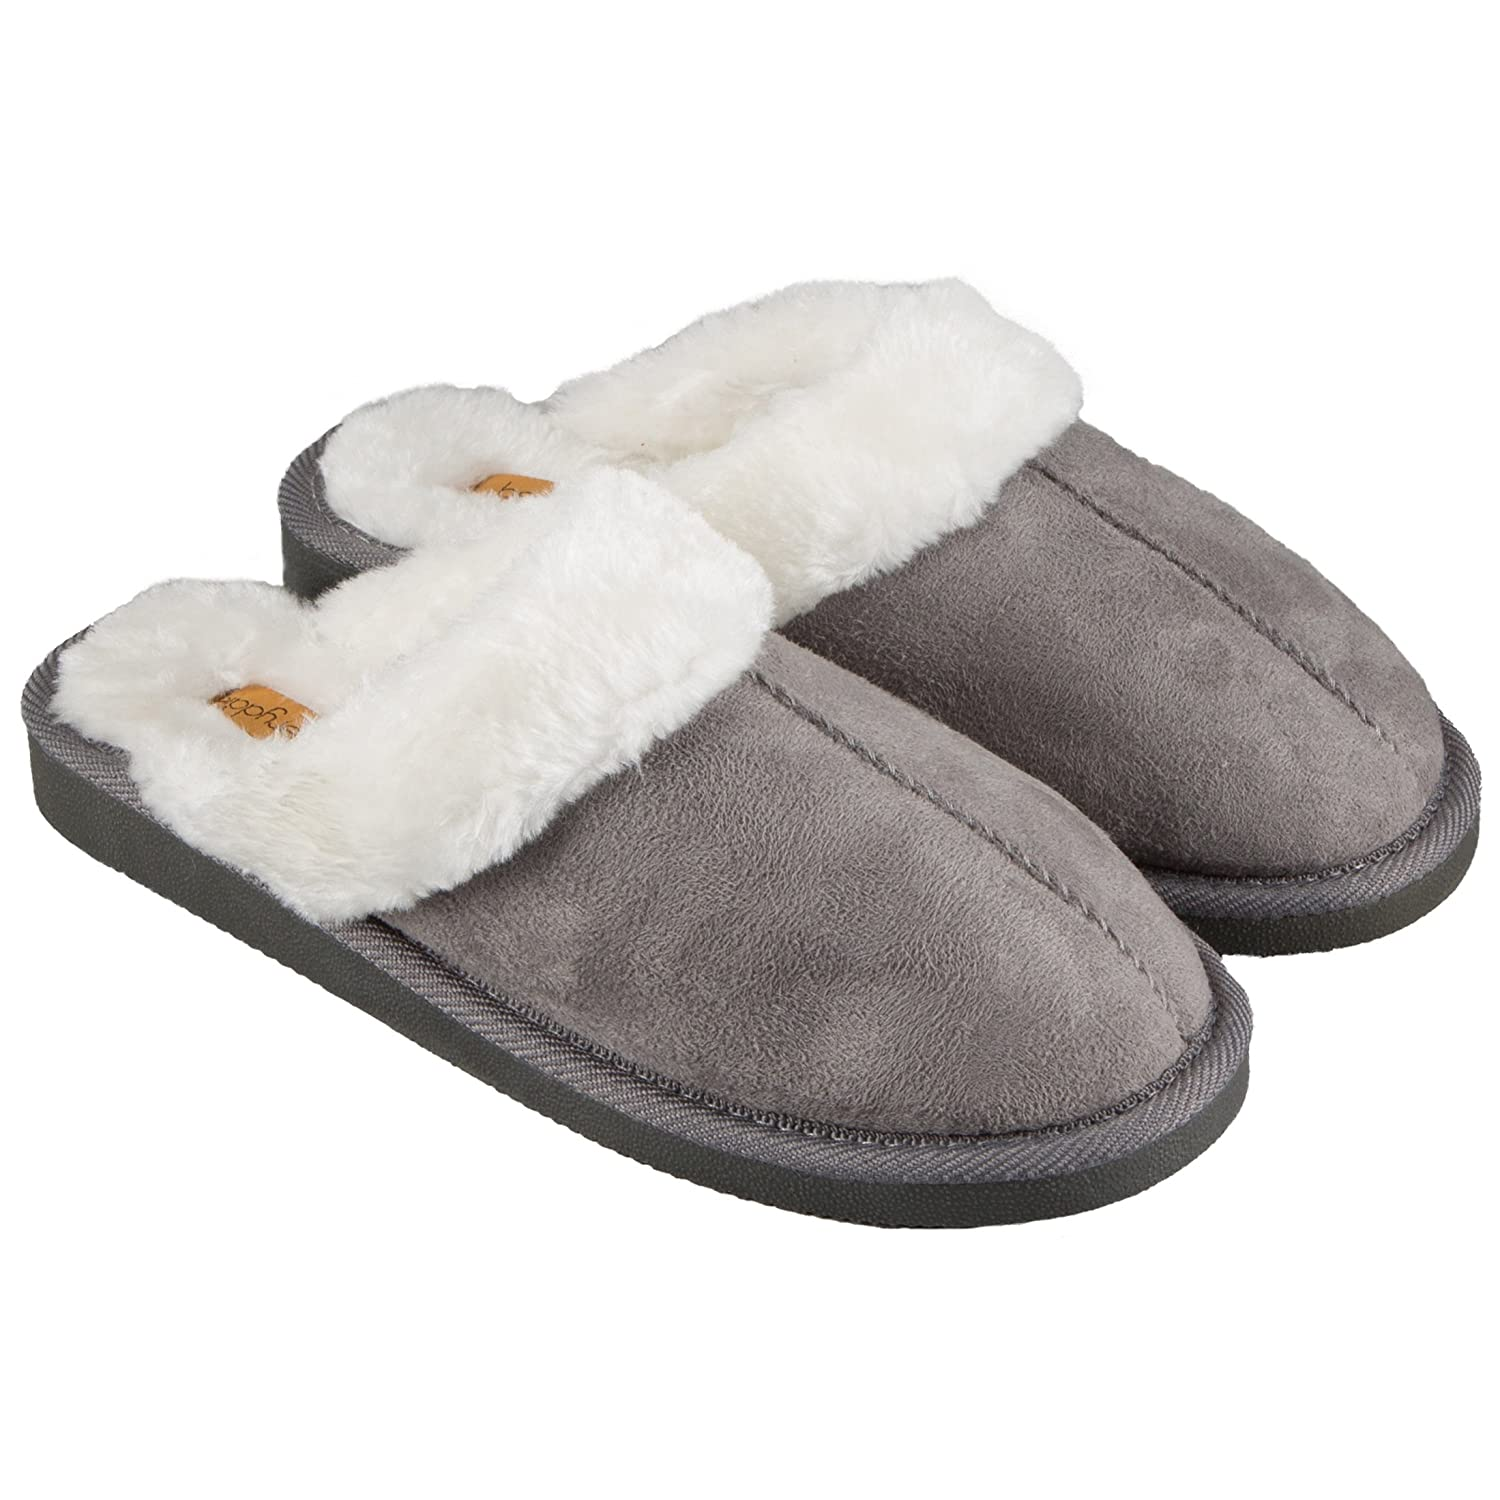 353ff0bb9 Berydale Women s Slippers with Cozy Lining  Amazon.co.uk  Shoes   Bags